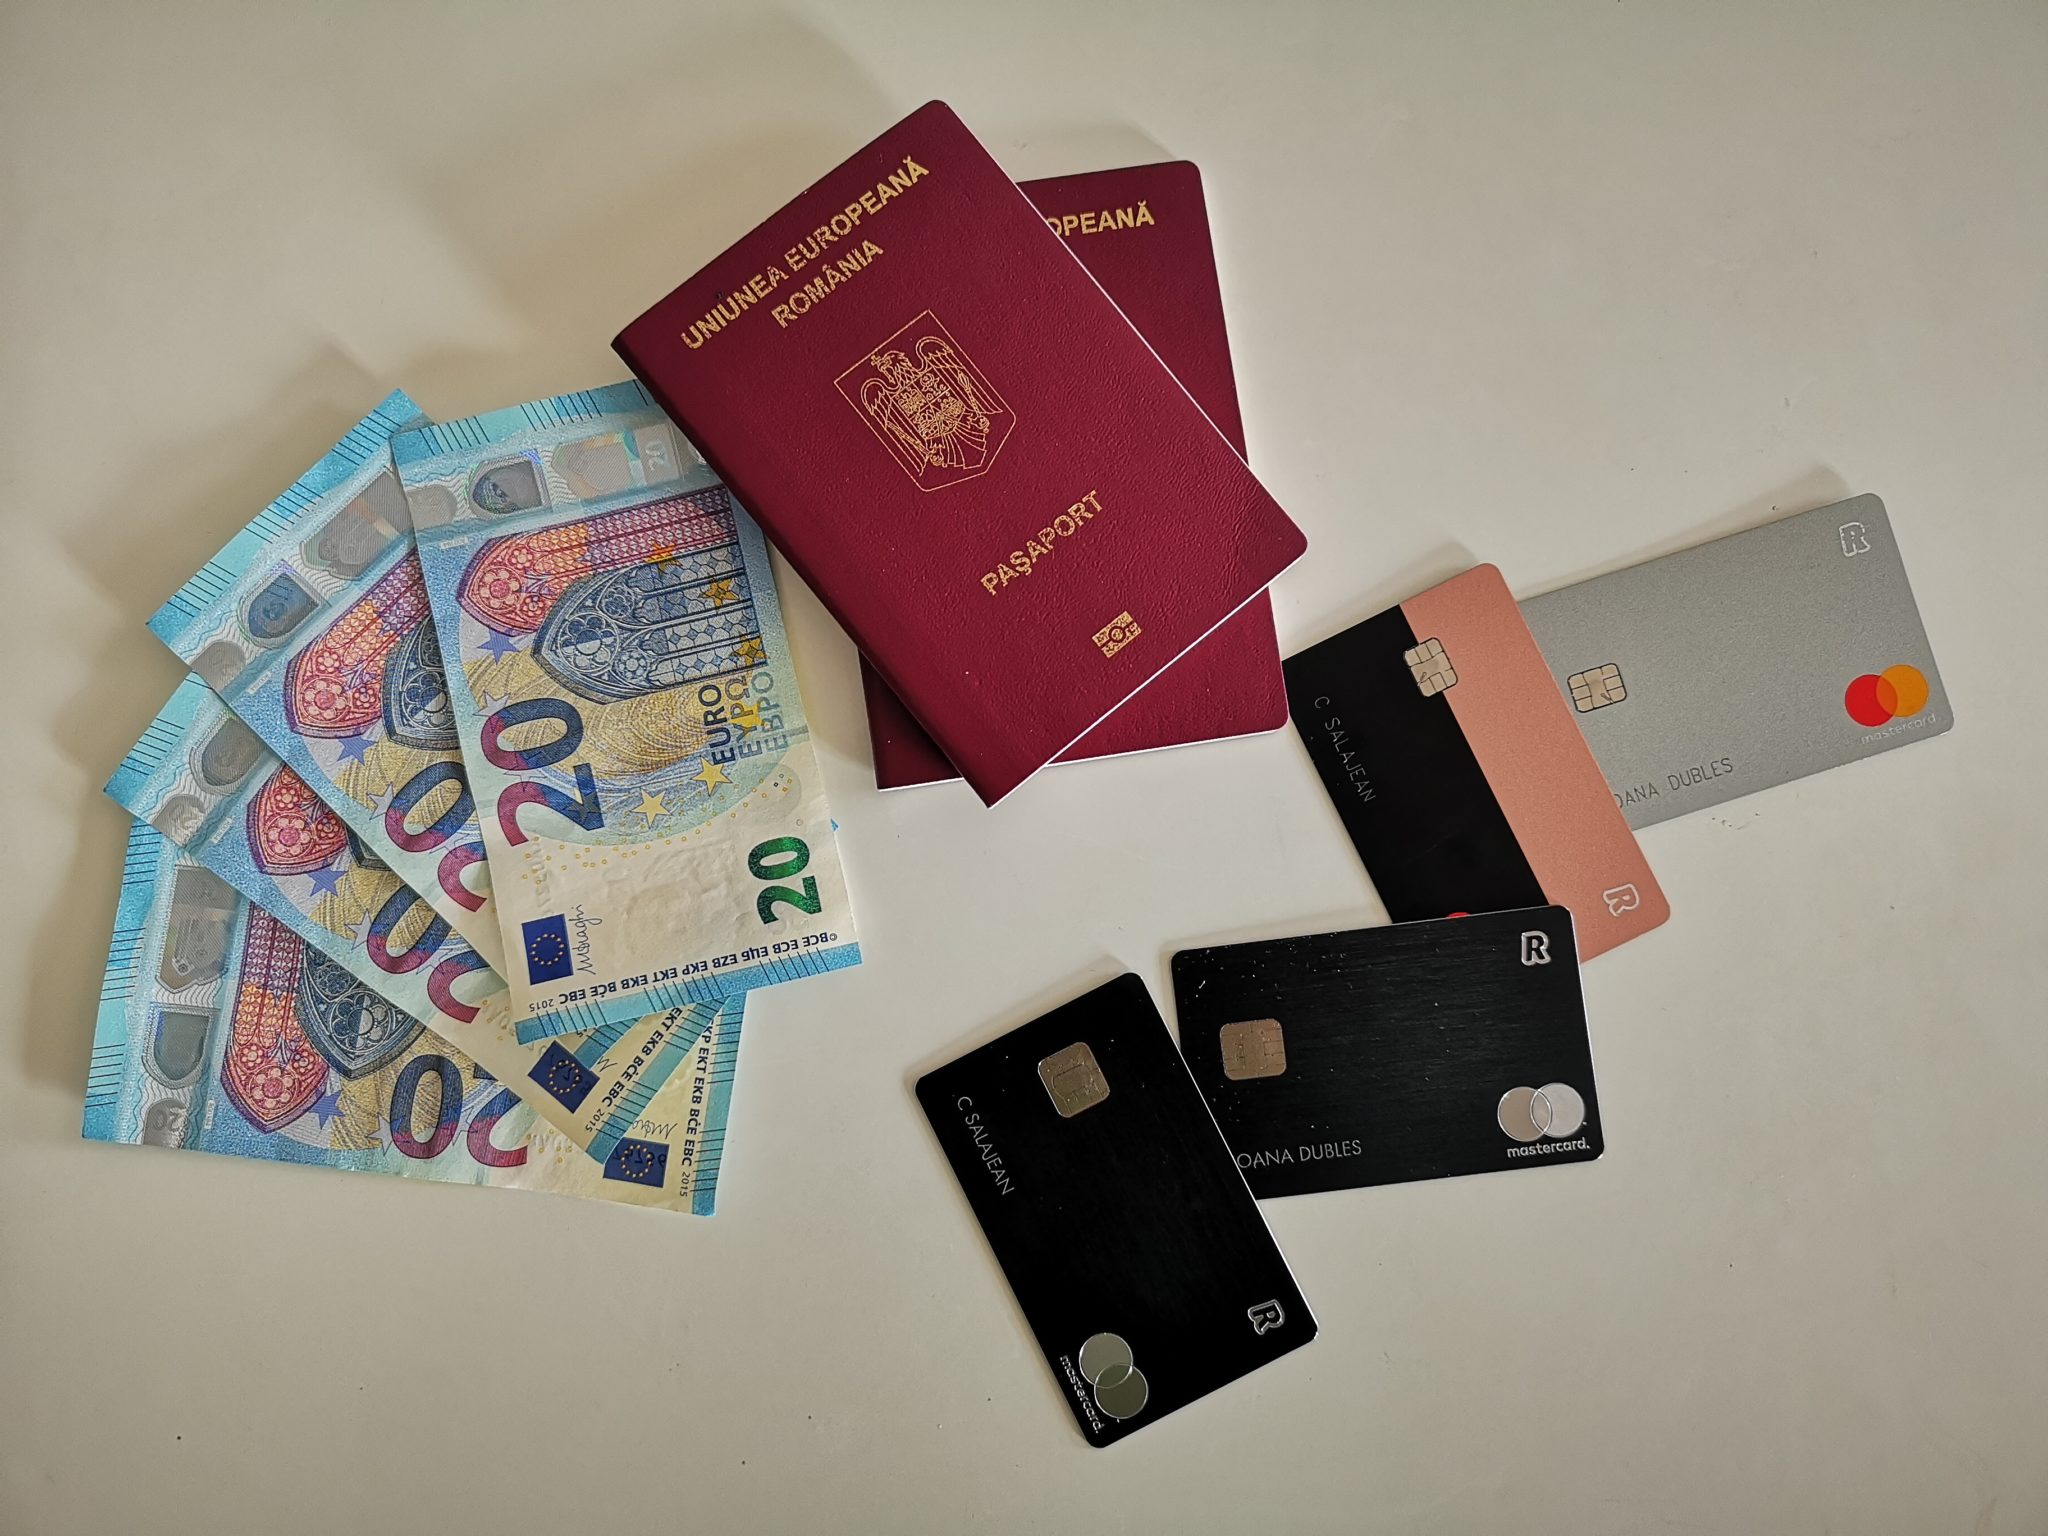 Revolut cards: Why every traveler should use Revolut